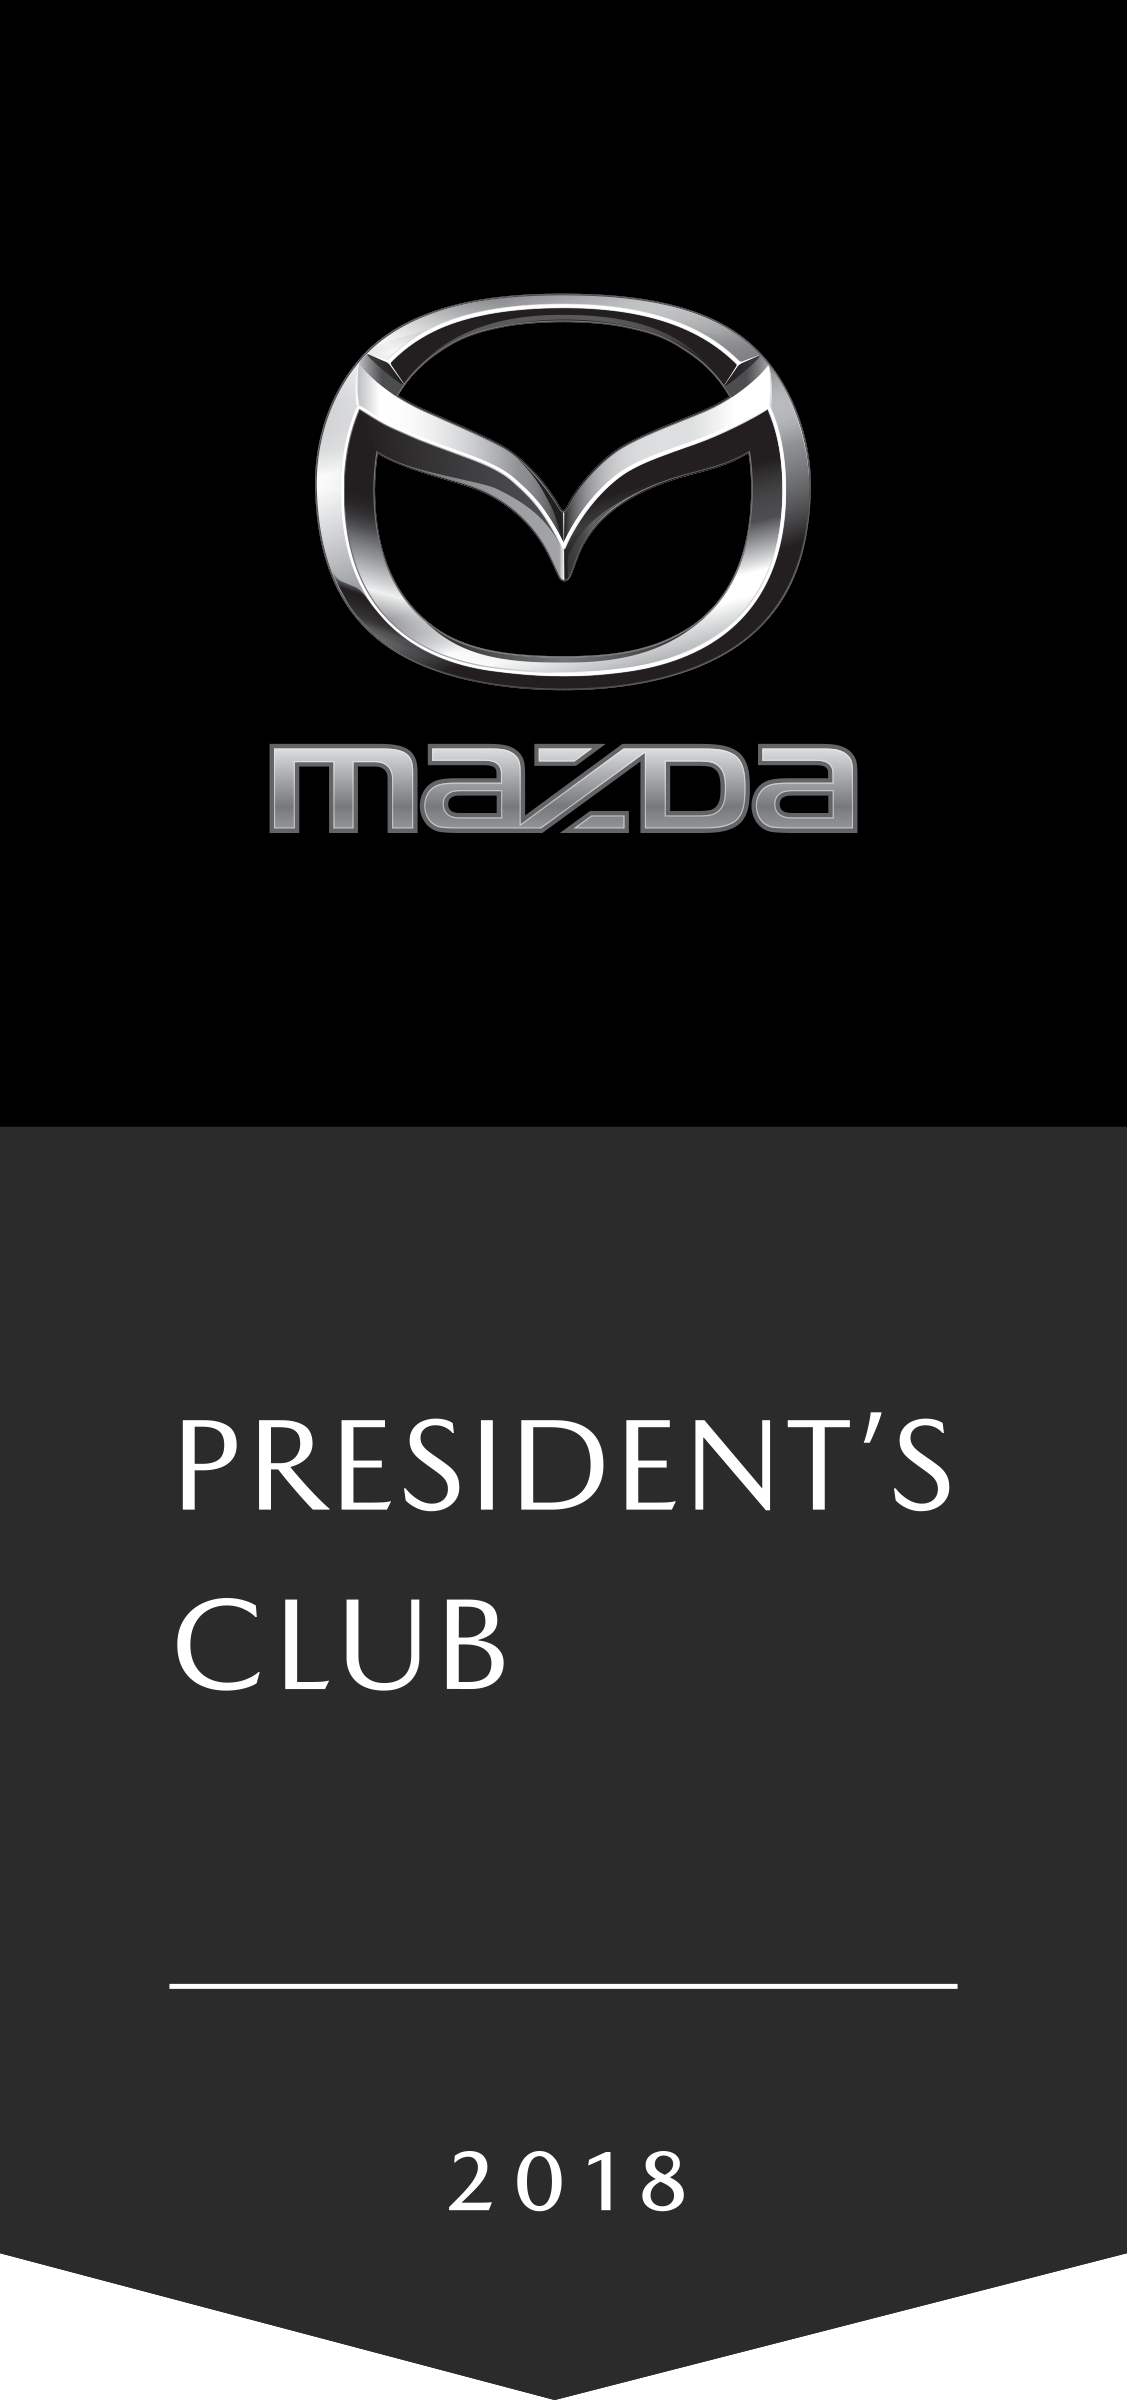 Mazda Presidents Club 2018